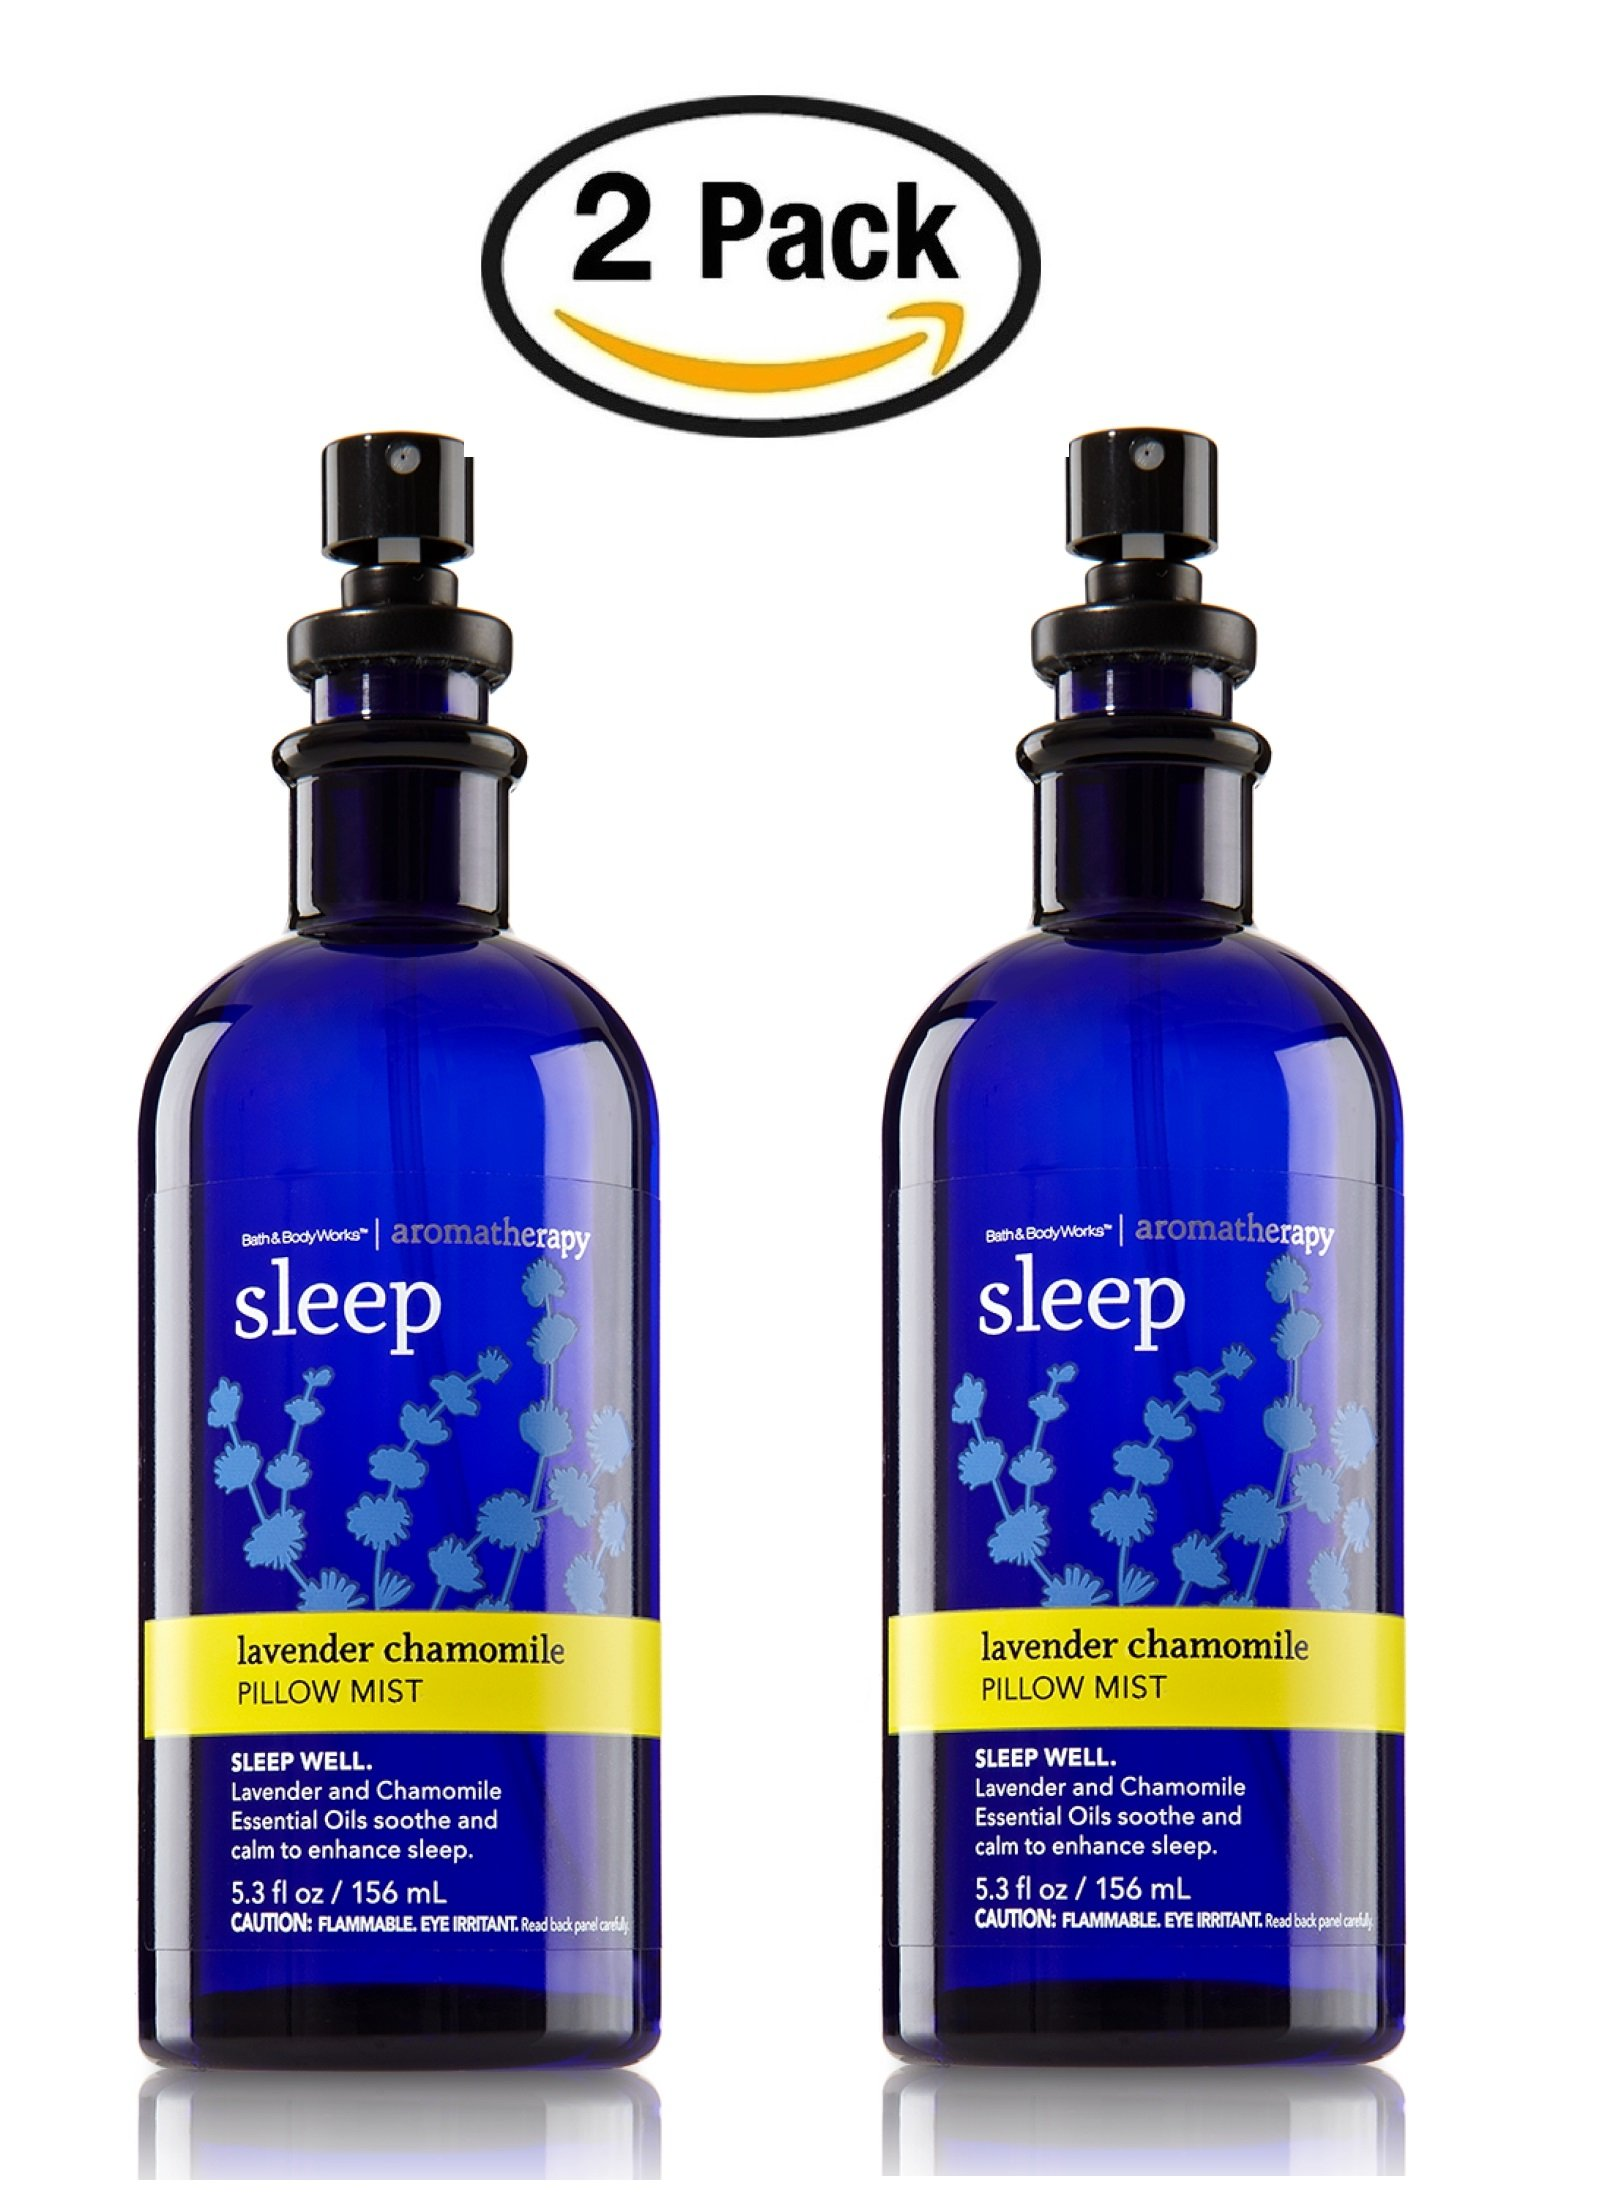 Bath & Body Works Aromatherapy Pillow Mist Lavender Chamomile 2 Pack